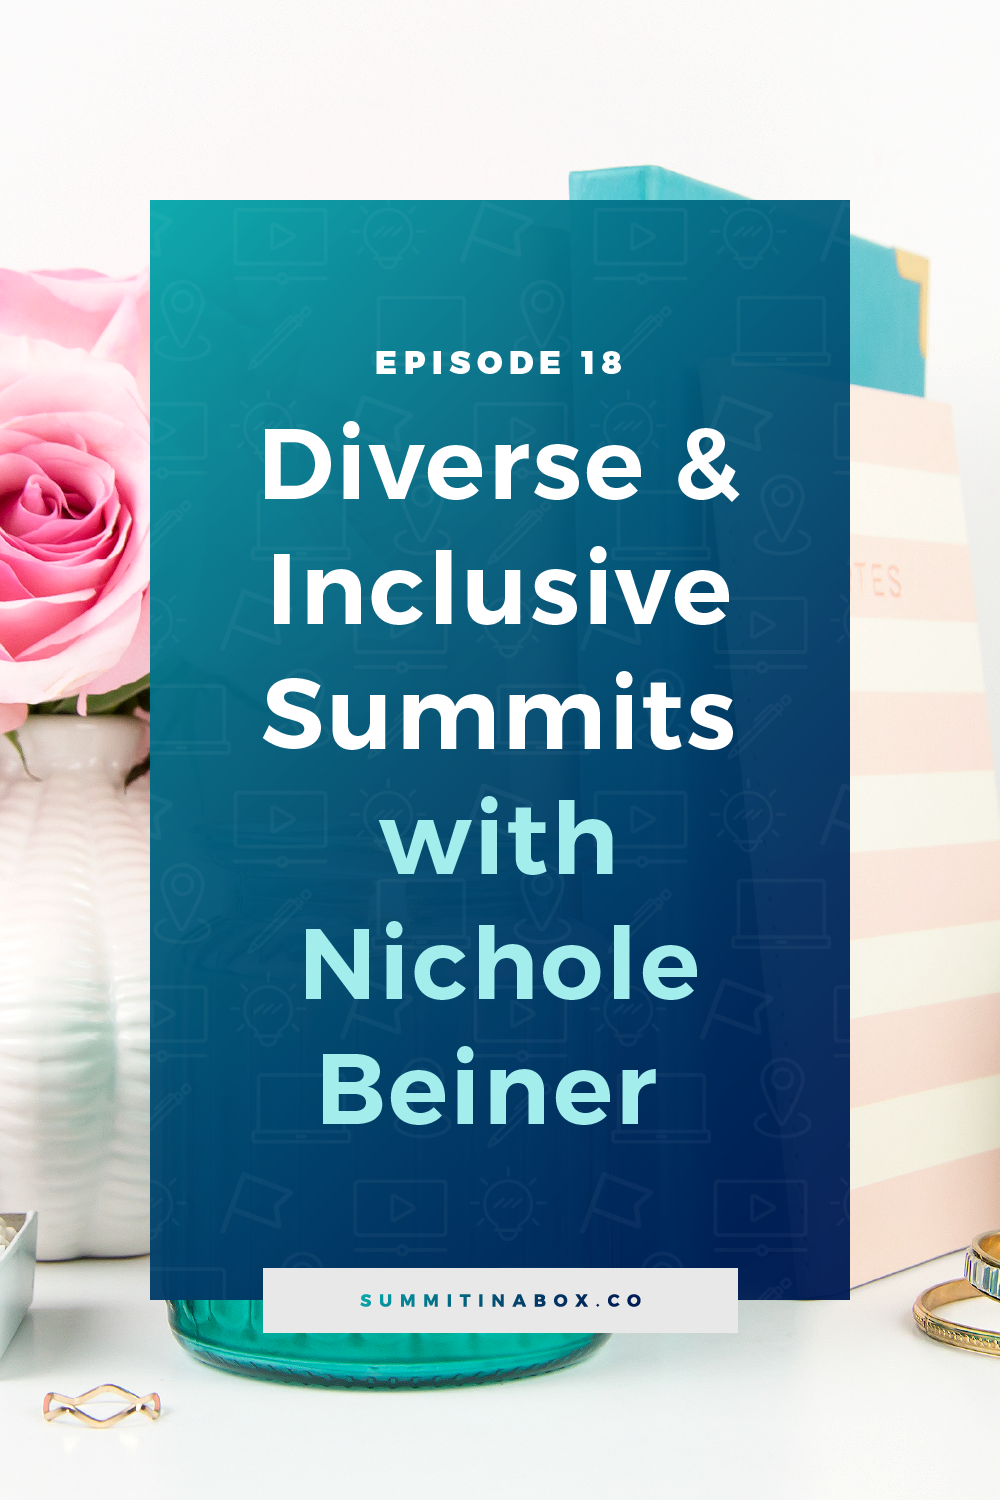 Virtual events have the power to break down barriers. But not if people are left out. Here's how to host a diverse and inclusive virtual summit.